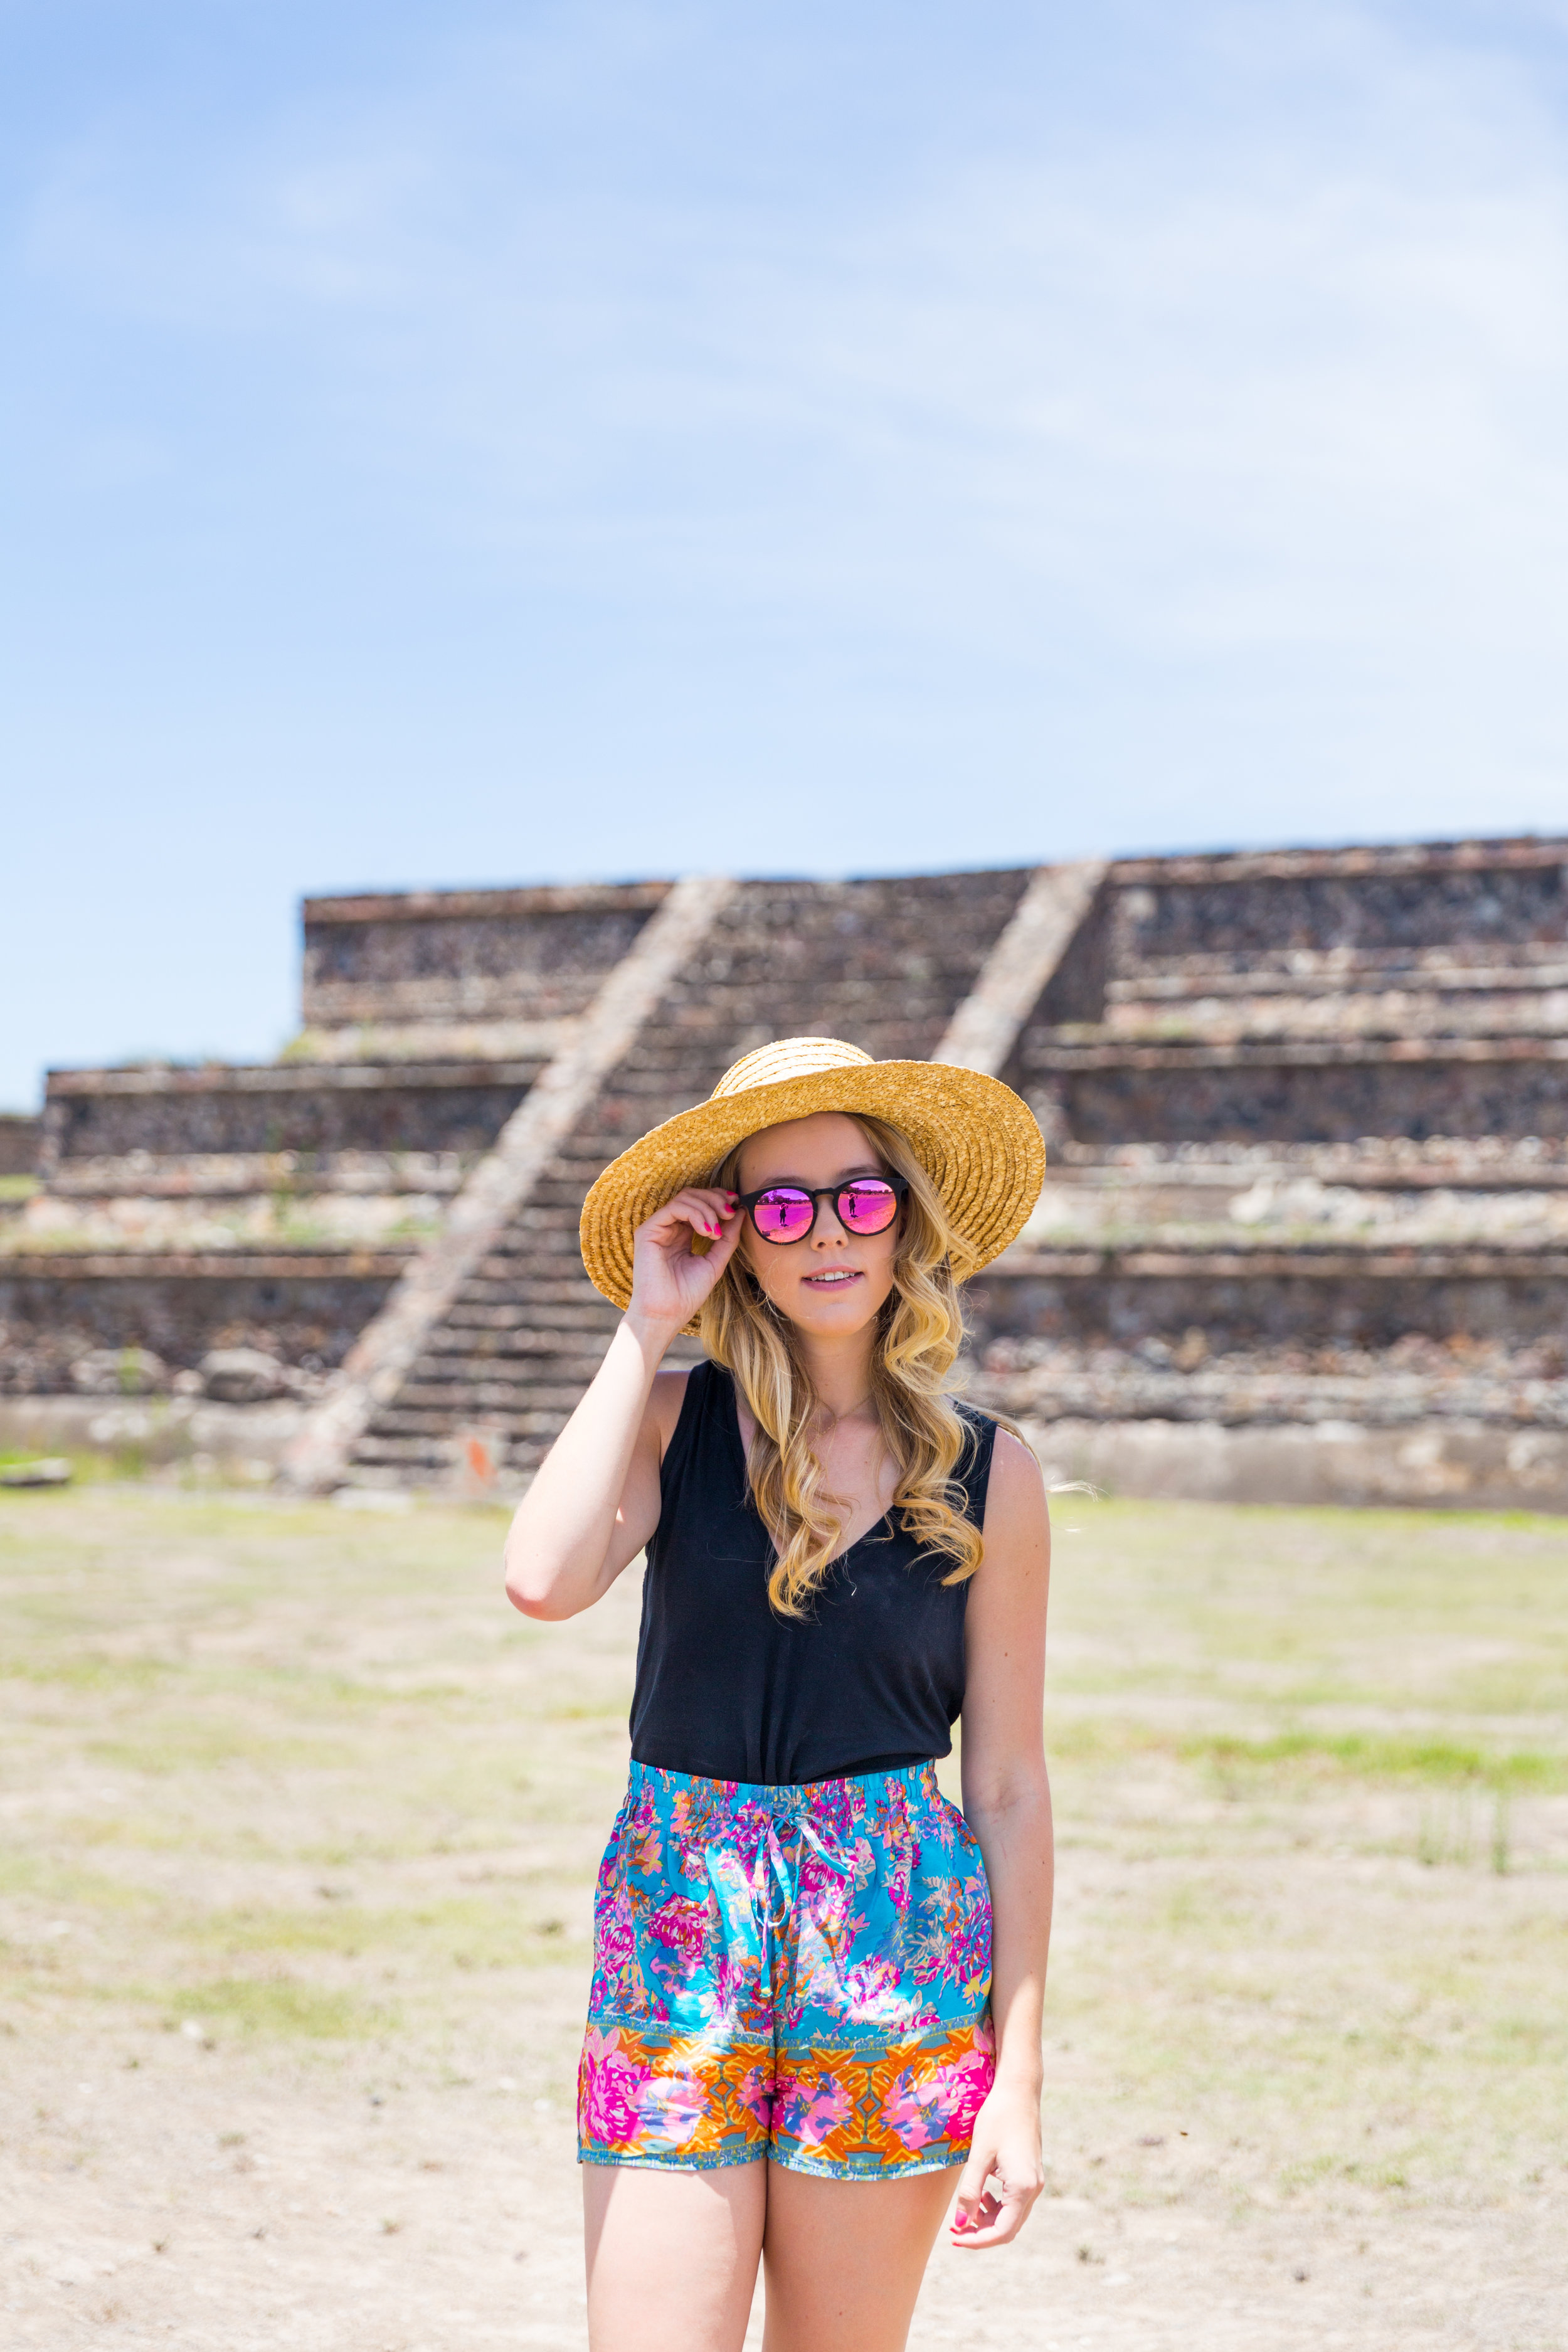 Mexico City Teotihuacan Pyramids Pattern Shorts Casual Summer Outfit-4.jpg